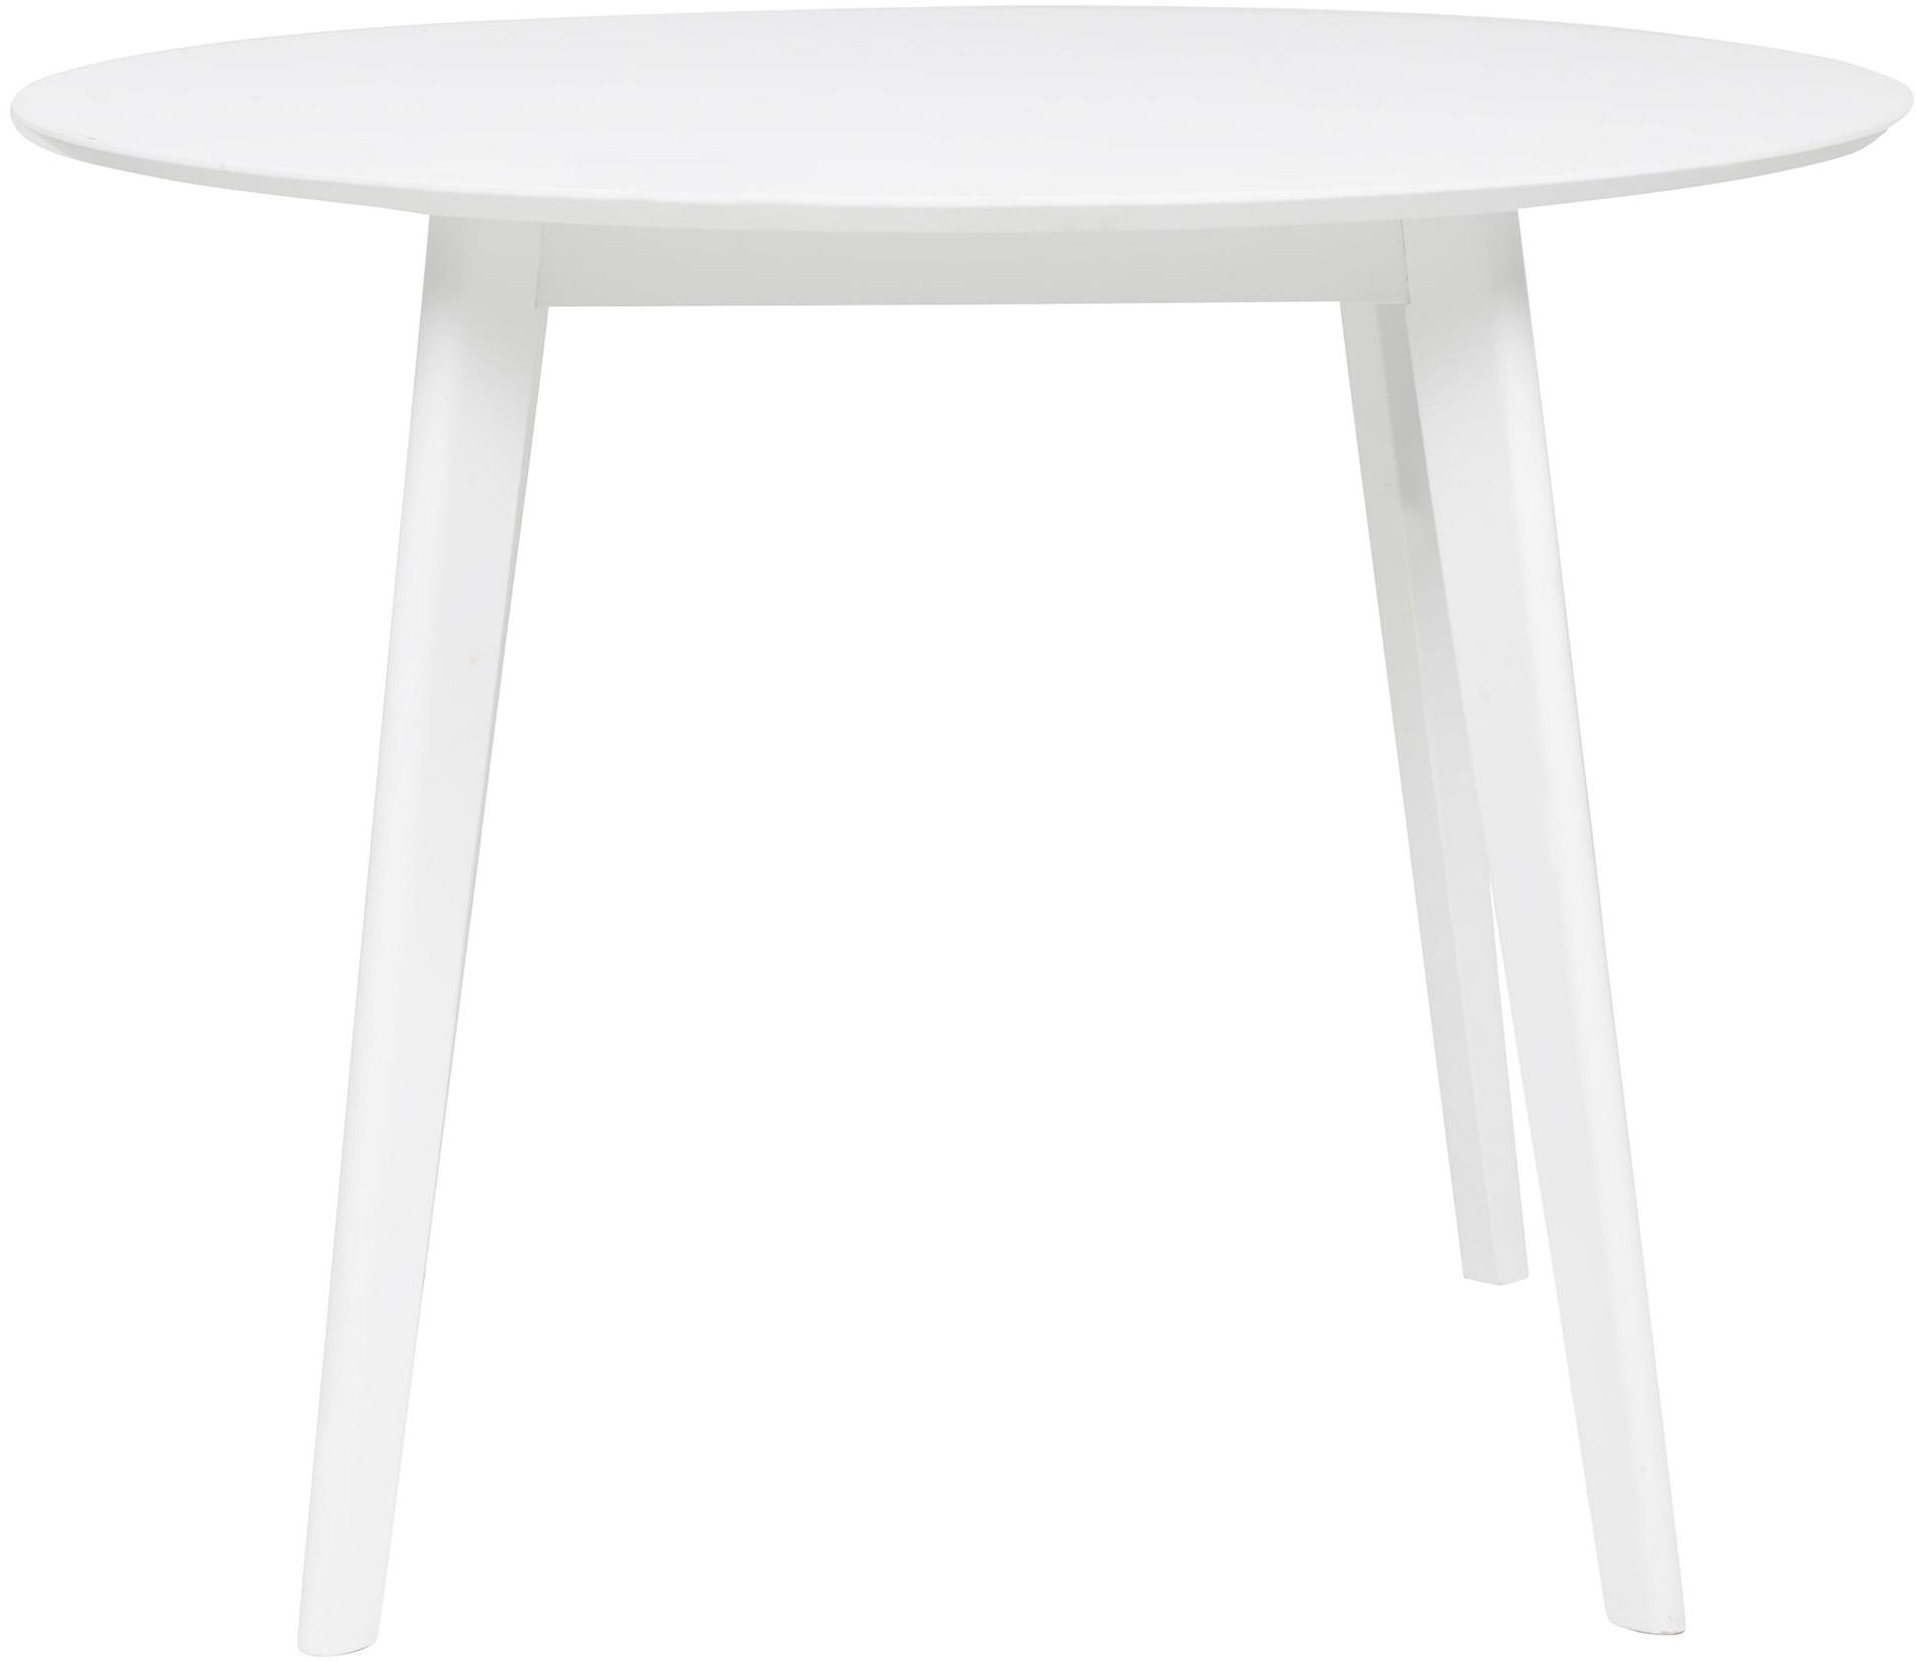 New leon wooden 4 seat round dining table white for 120 round table seats how many